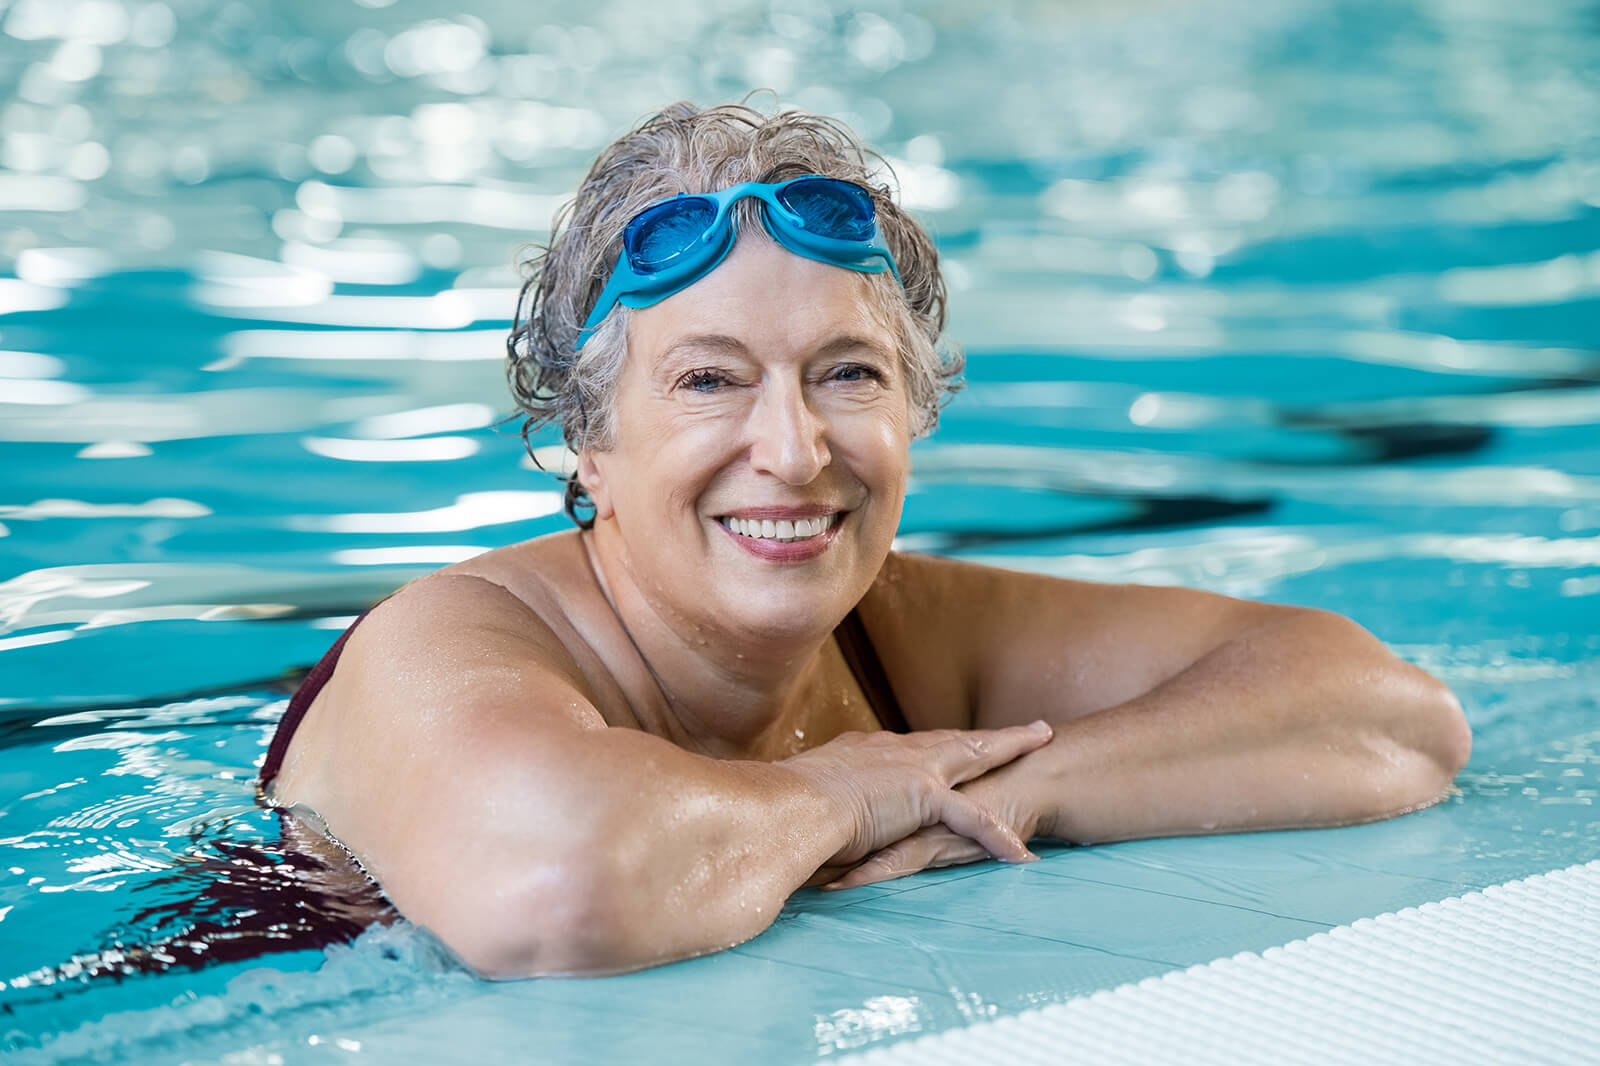 Swimming is a great low-impact form of exercise that supports joint health